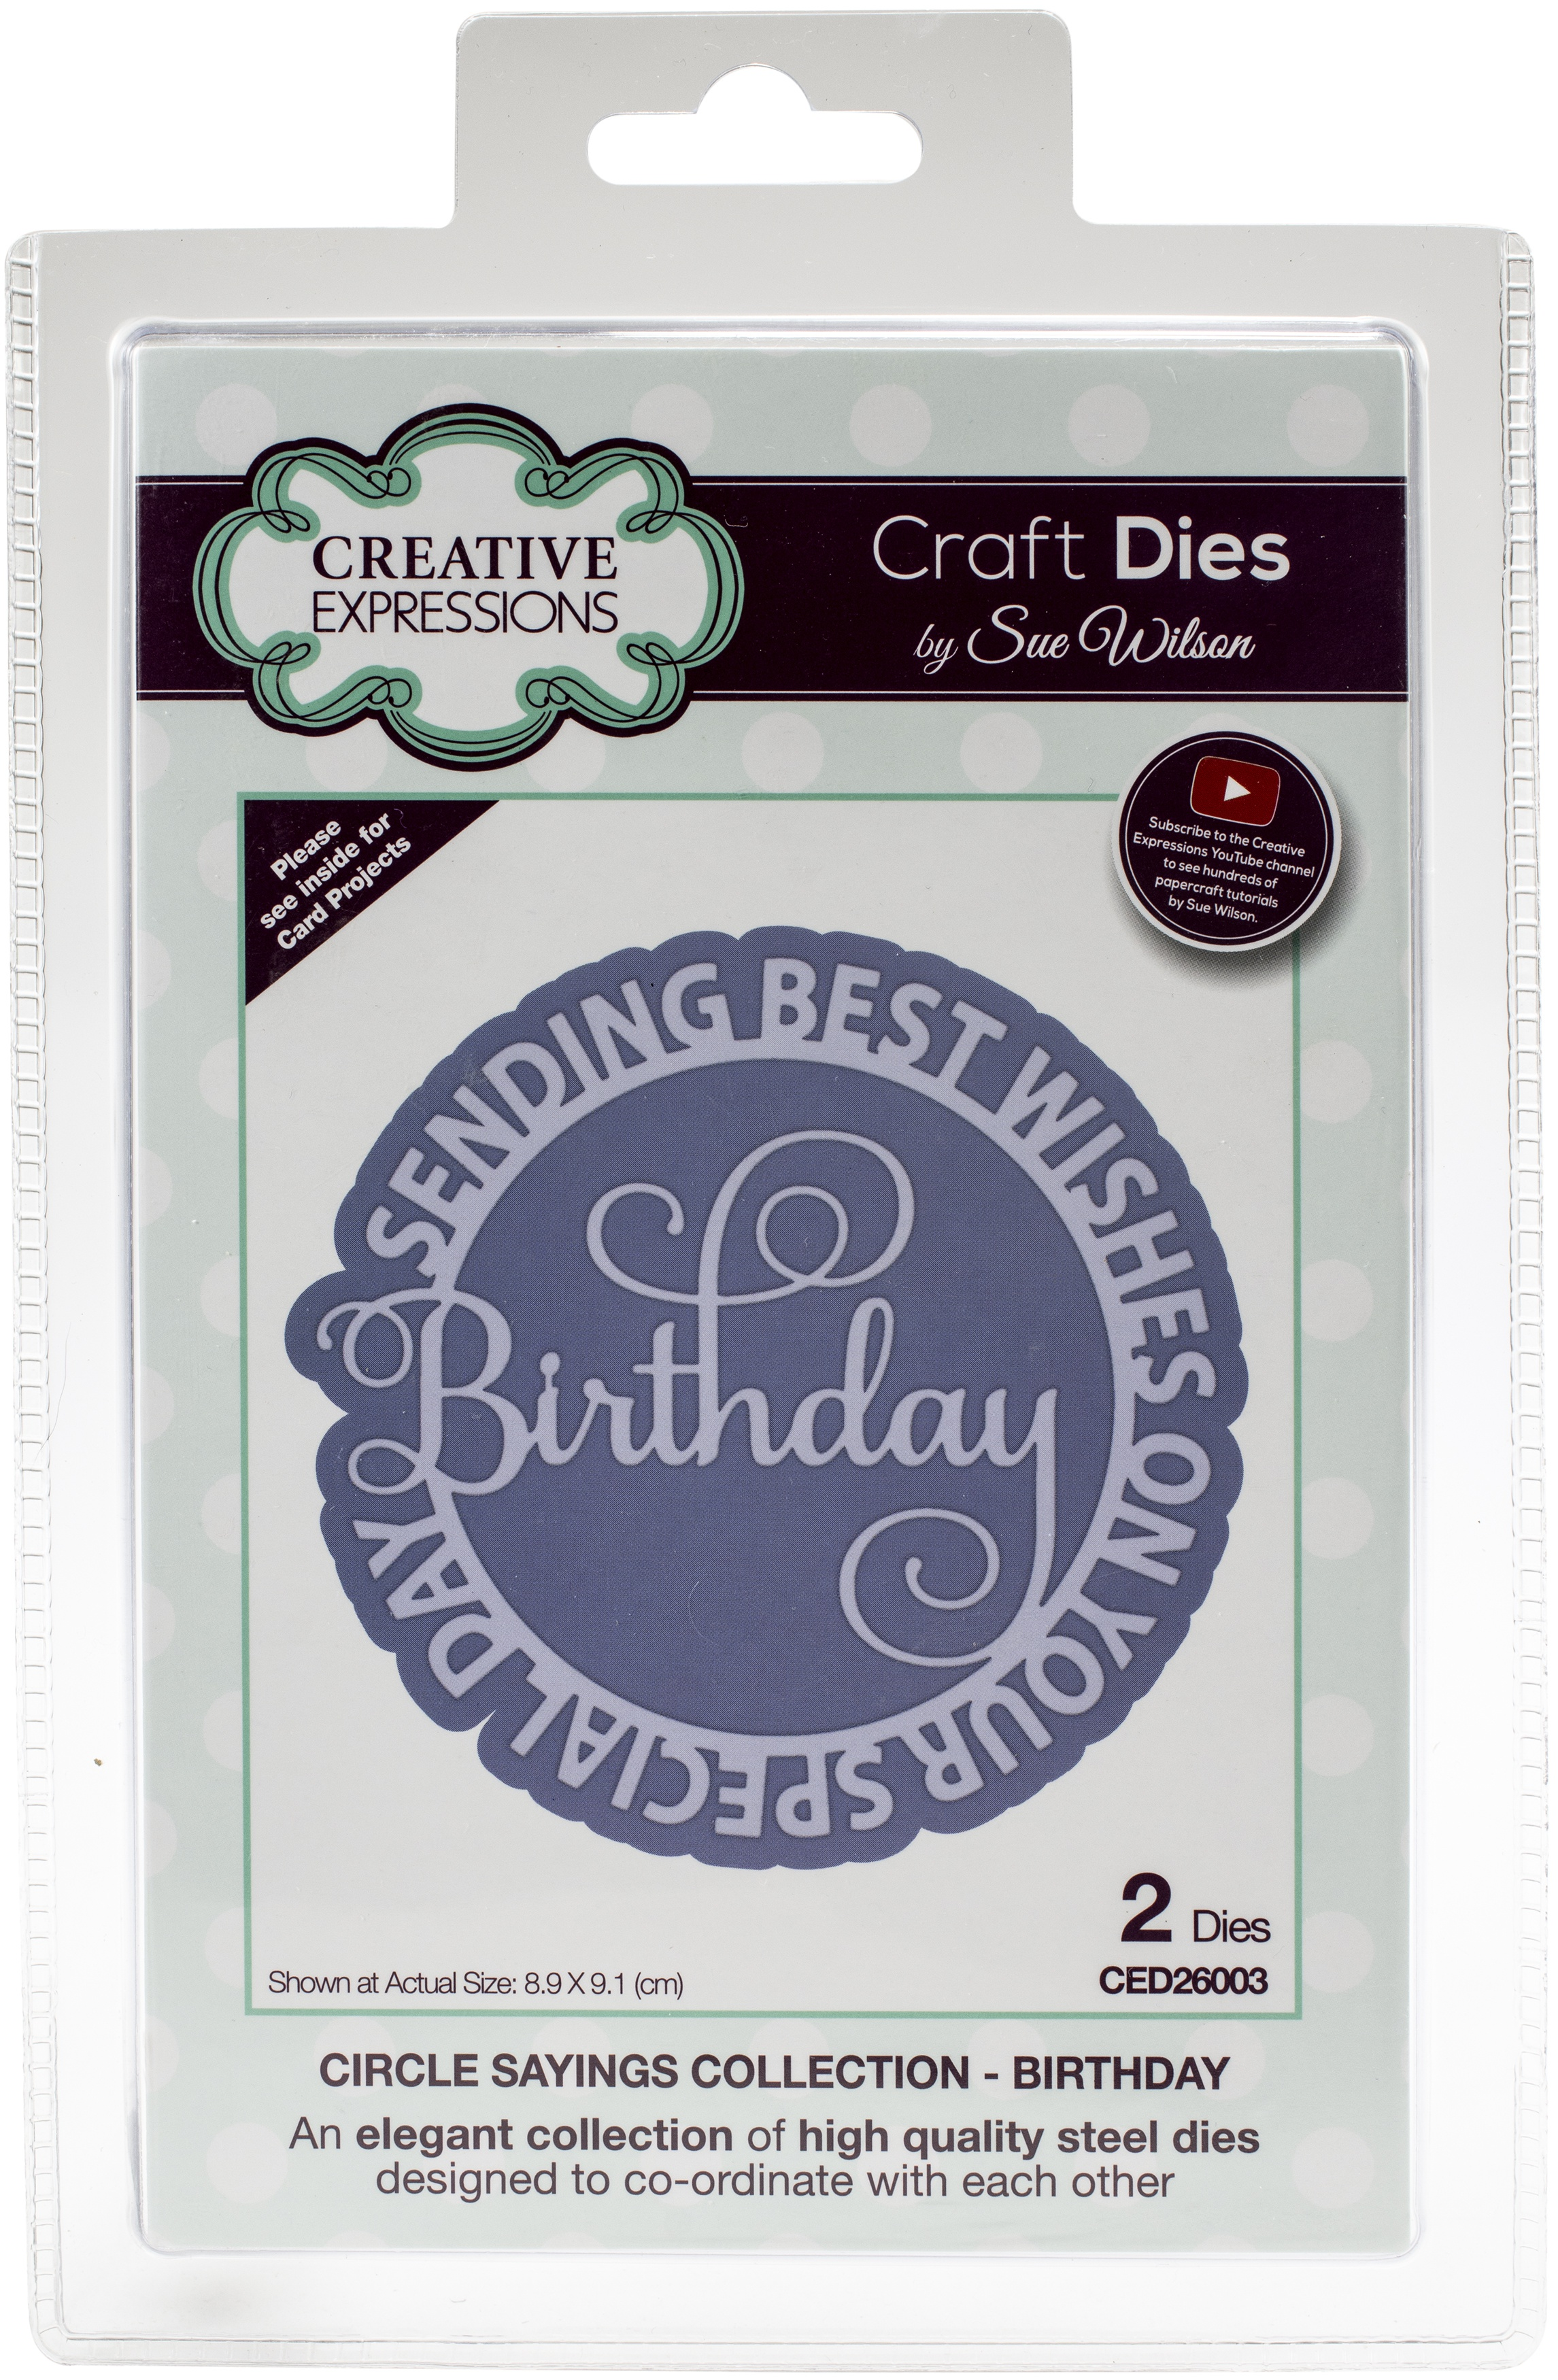 Creative Expressions Craft Dies By Sue Wilson-Circle Sayings- Birthday